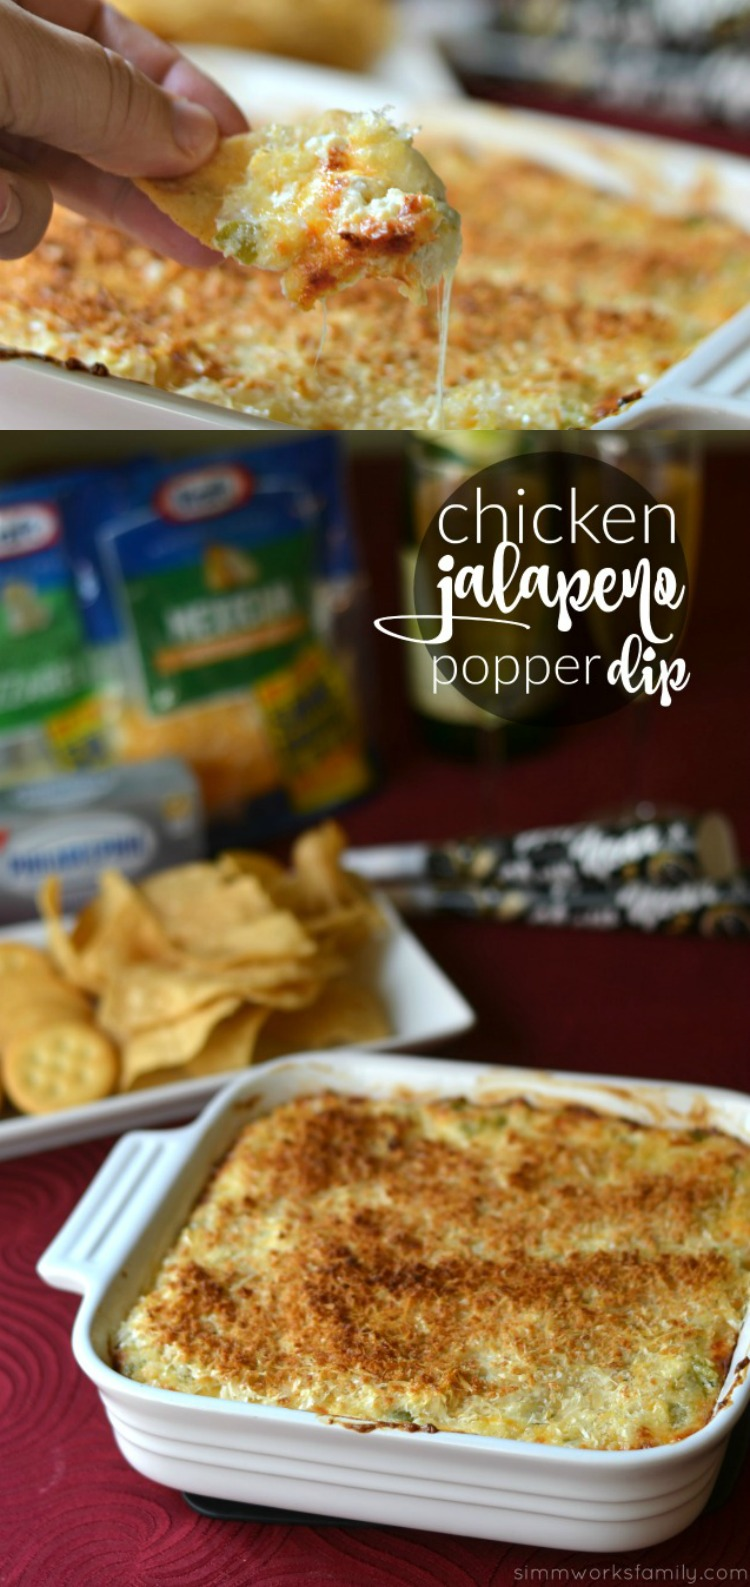 This creamy chicken jalapeno popper dip is the perfect appetizer for New Year's Eve and is sure to be a crowd pleaser!